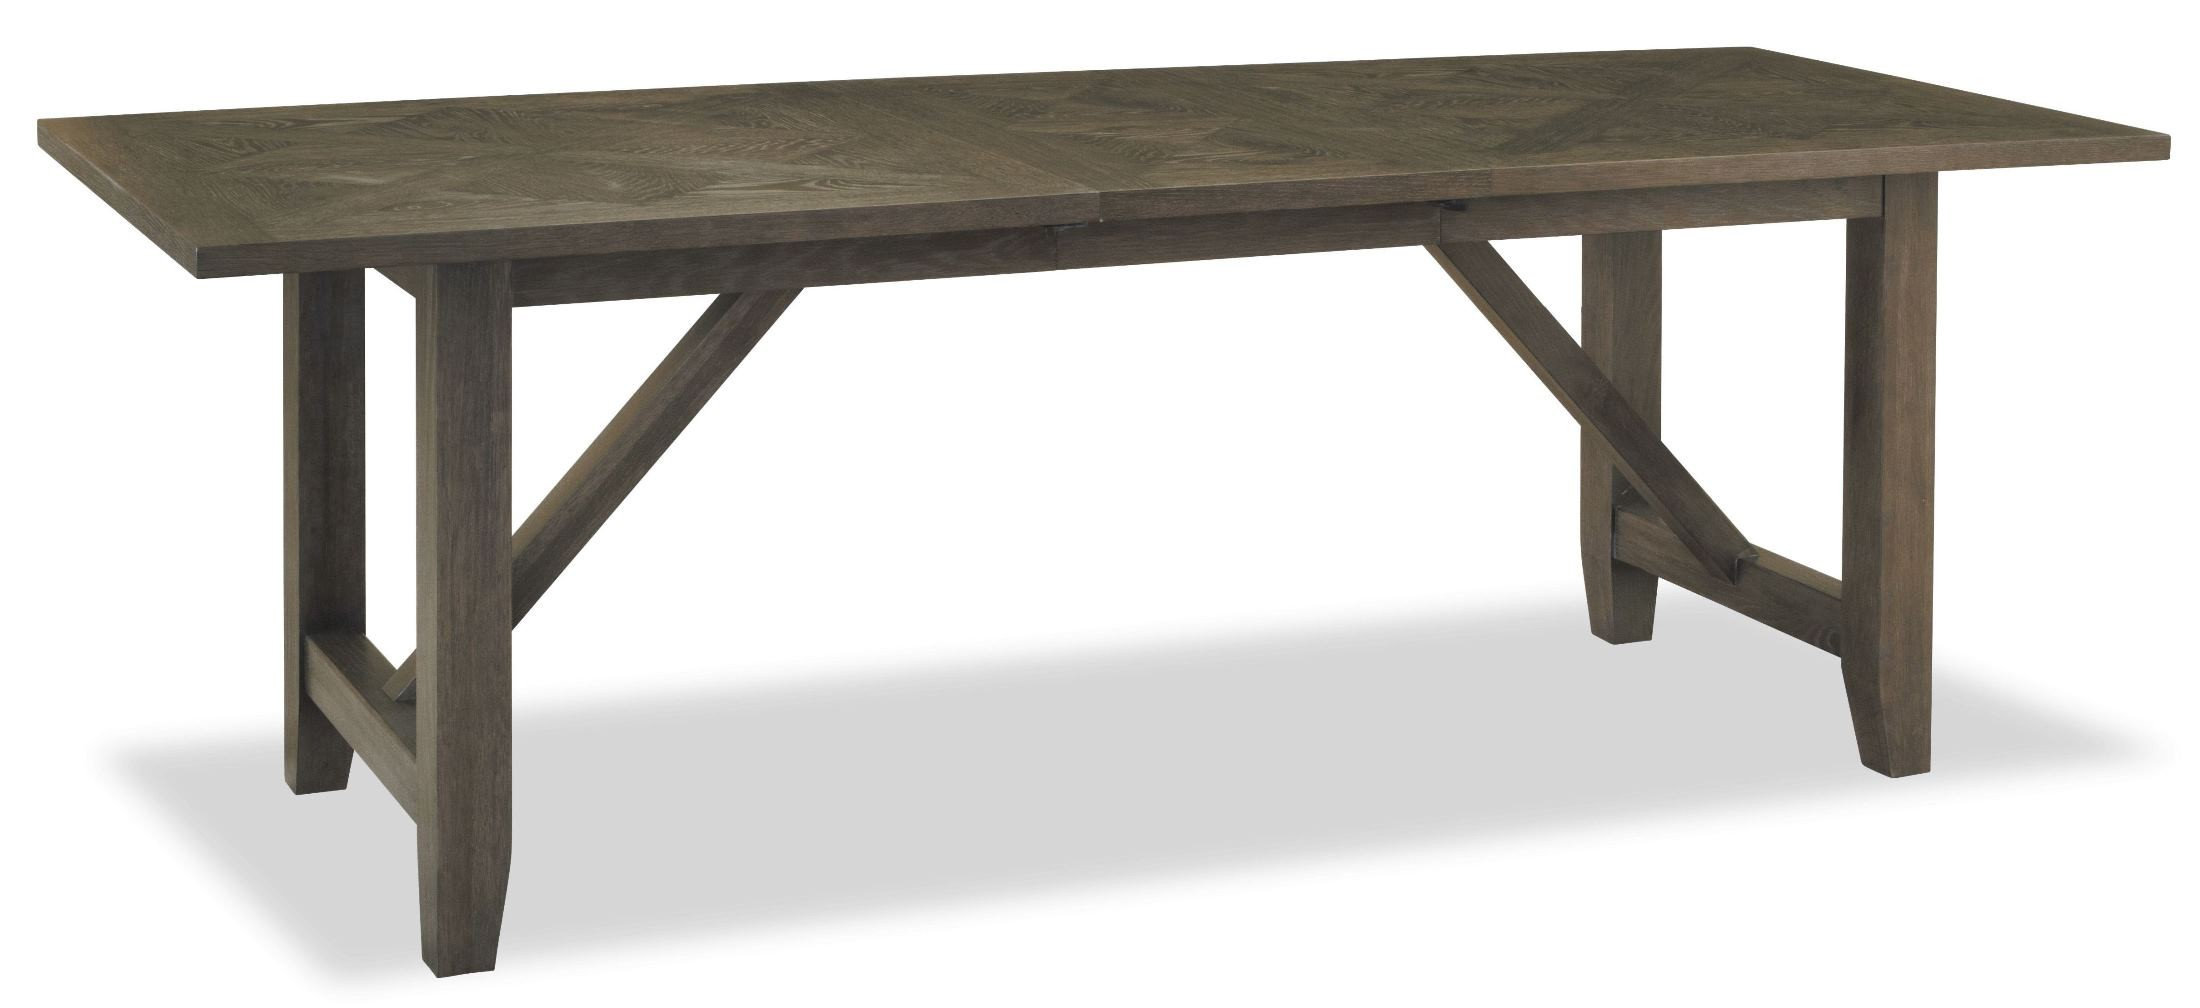 Berkeley3 Brownstone Chelsea Kitchen Table From Universal